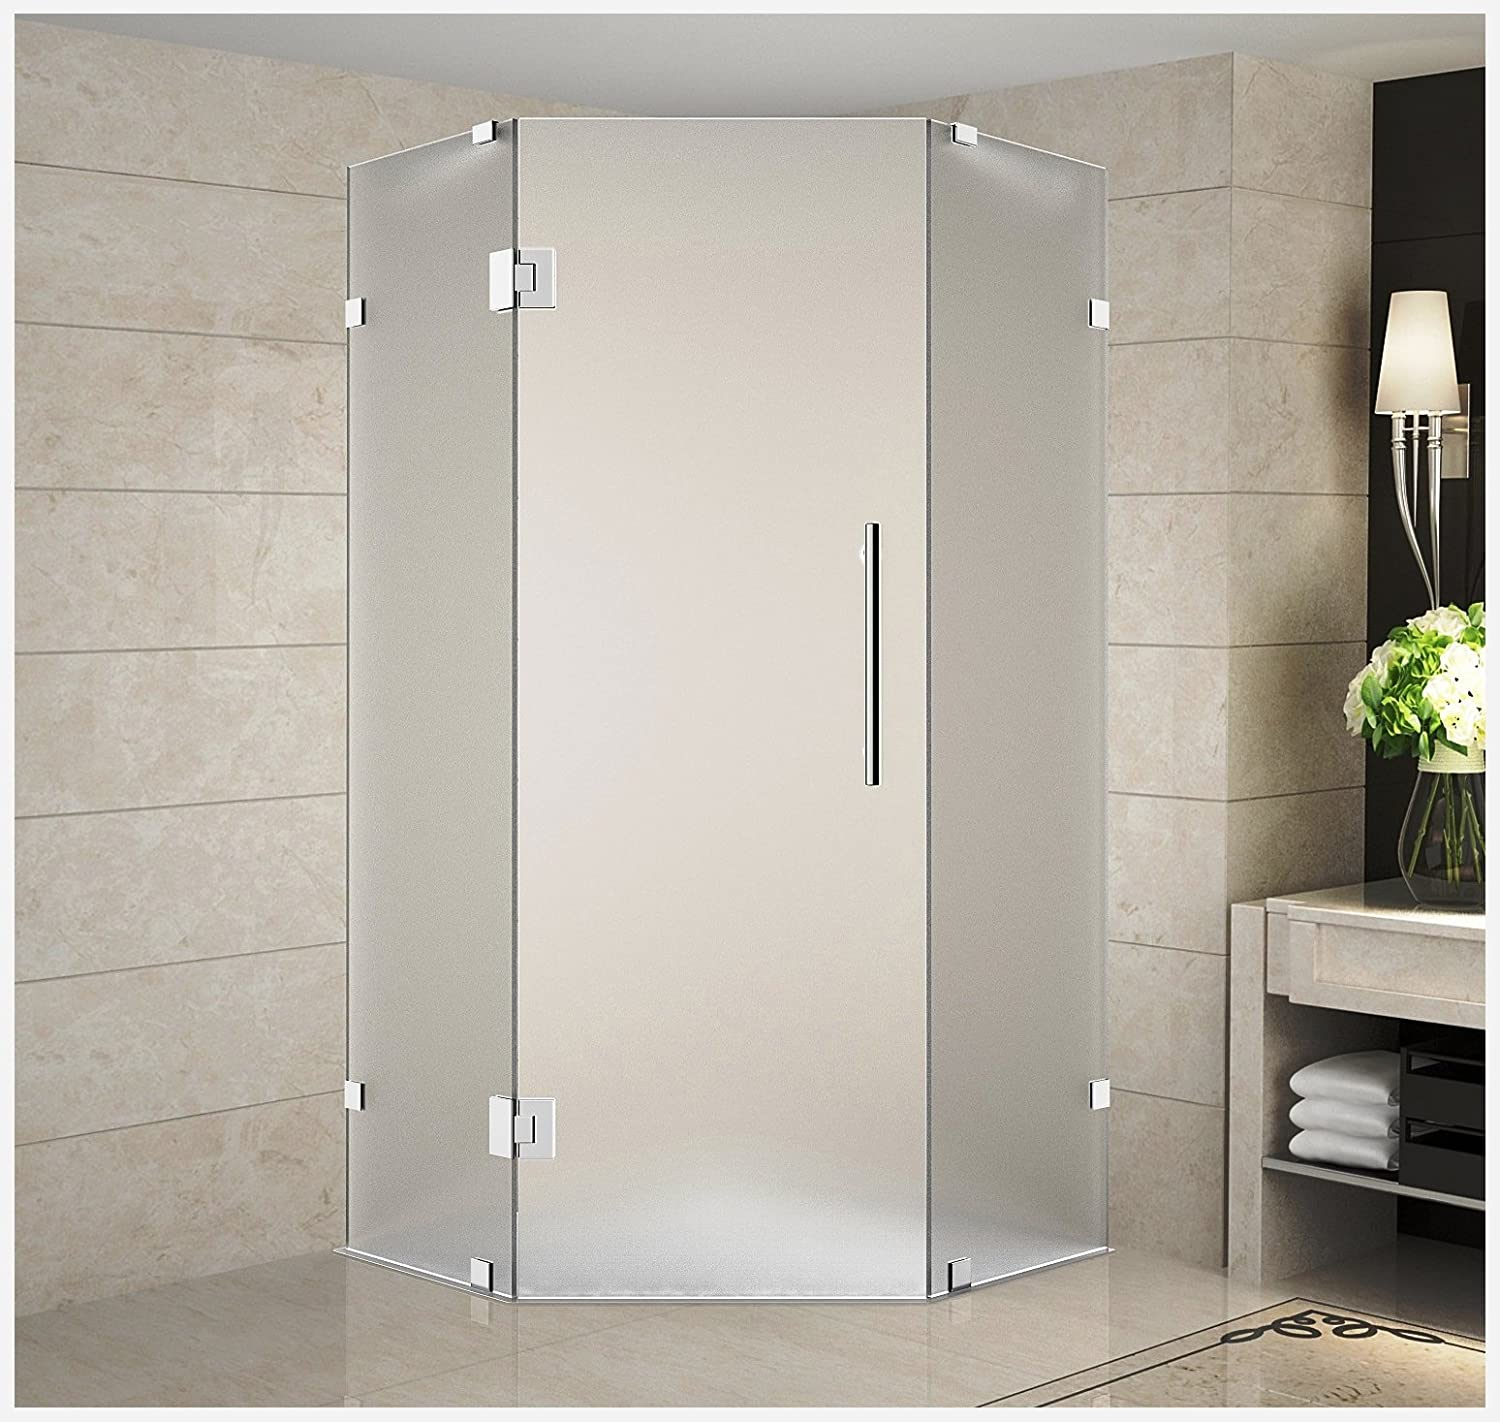 Aston Sen986f Ch 38 10 Neoscape Completely Frameless Neo Angle Shower Enclosure In Frosted Glass Polished Chrome 38 X 38 X 72